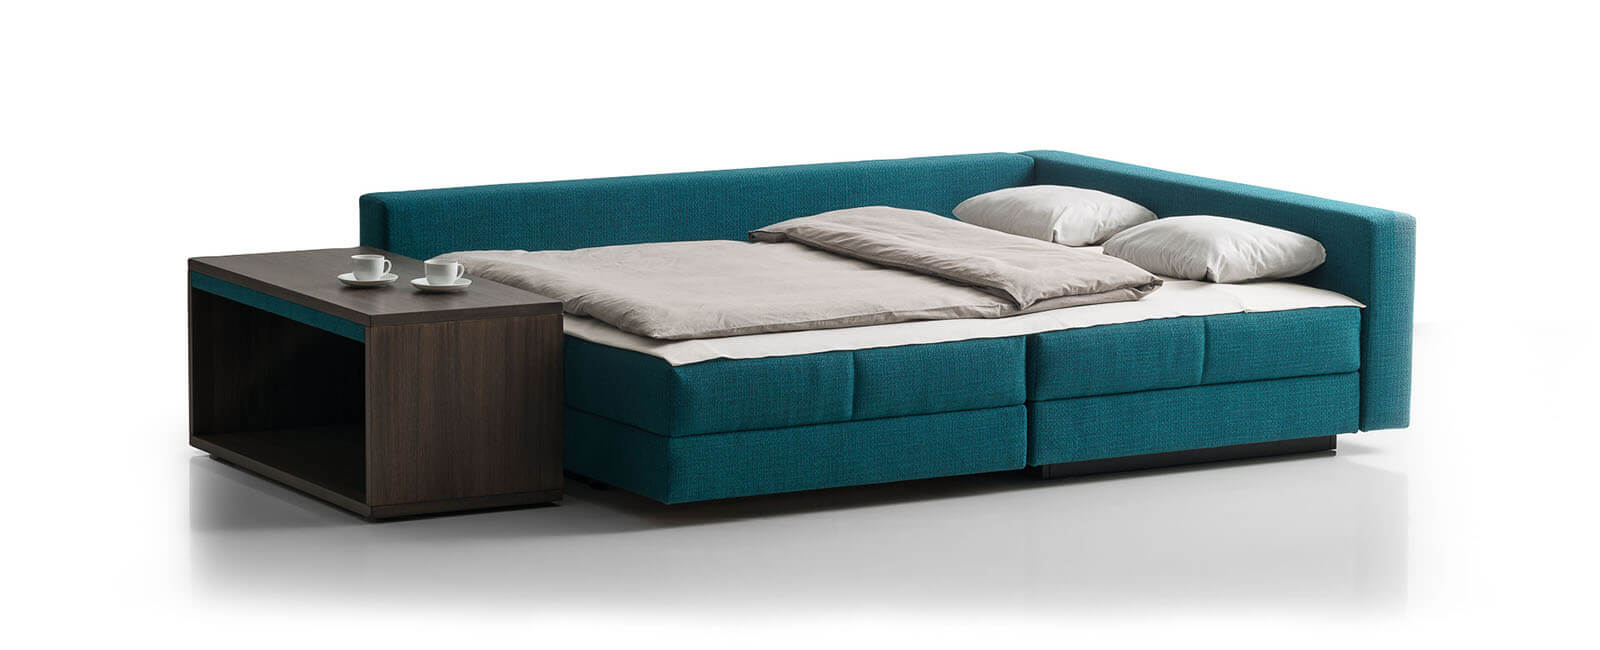 Franz Fertig Cocco Cocco Sectional Sofa Bed